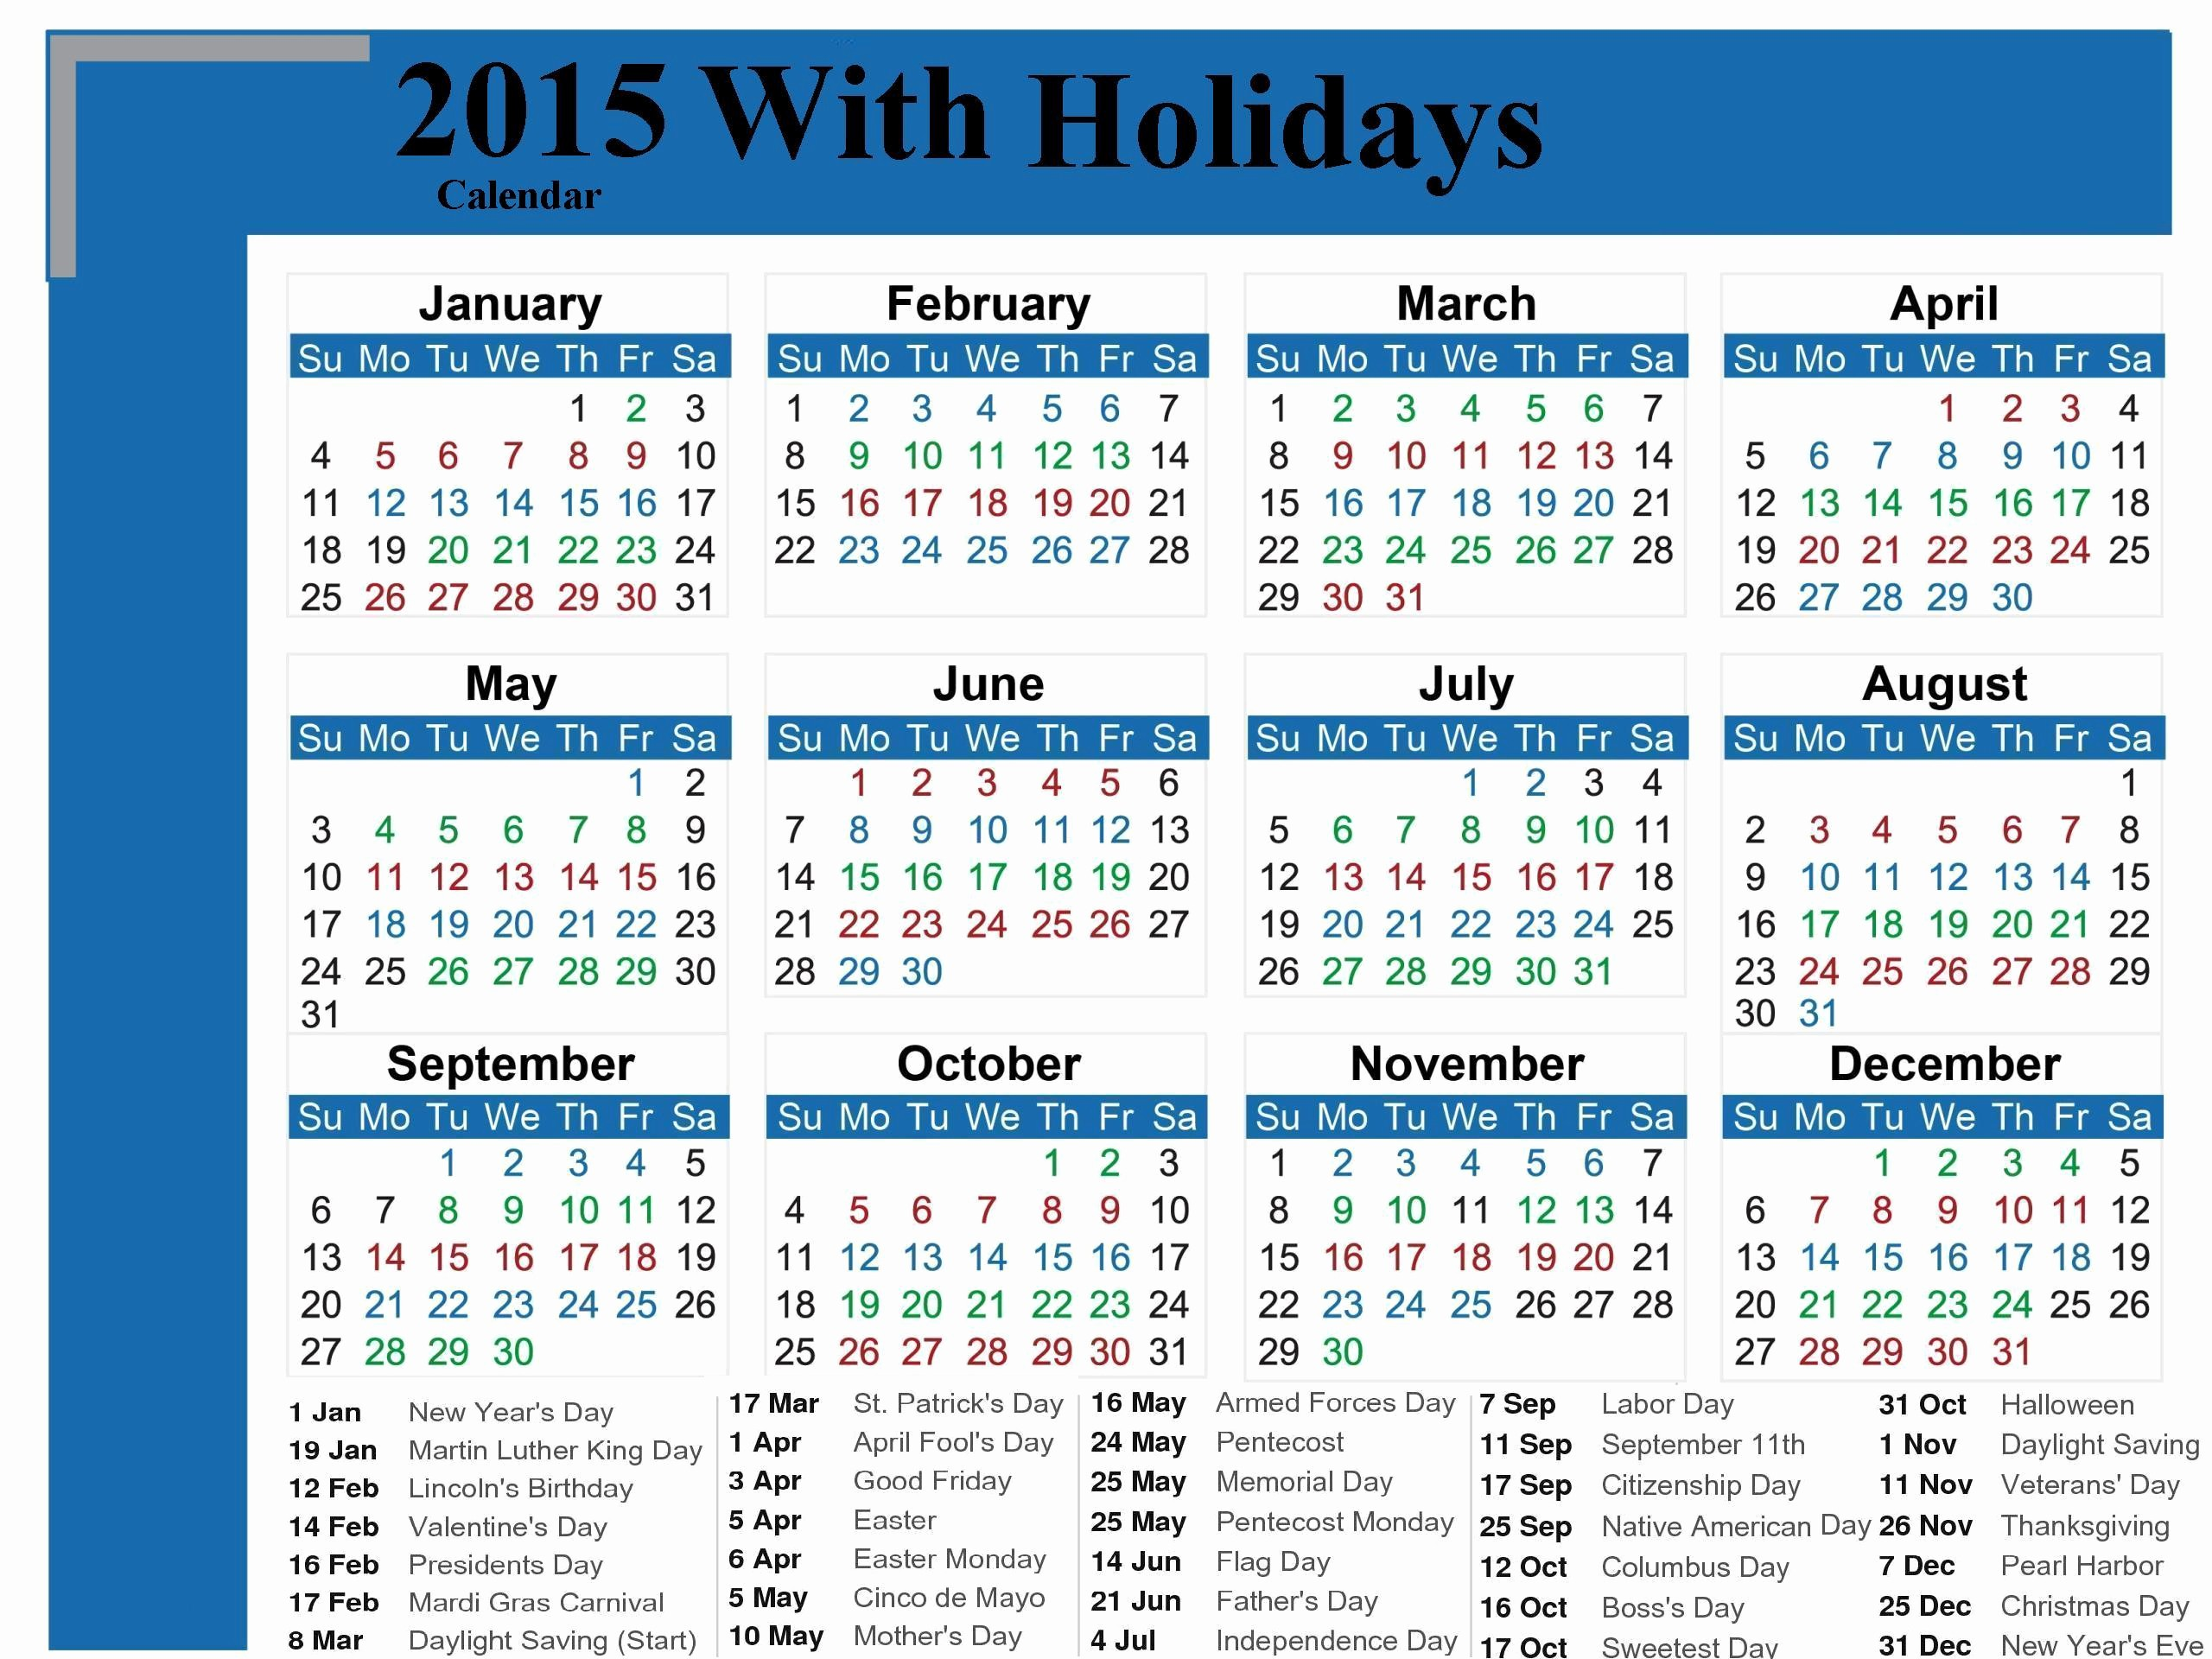 Calendar 2015 Printable with Holidays Beautiful Calendar with Holidays 2015